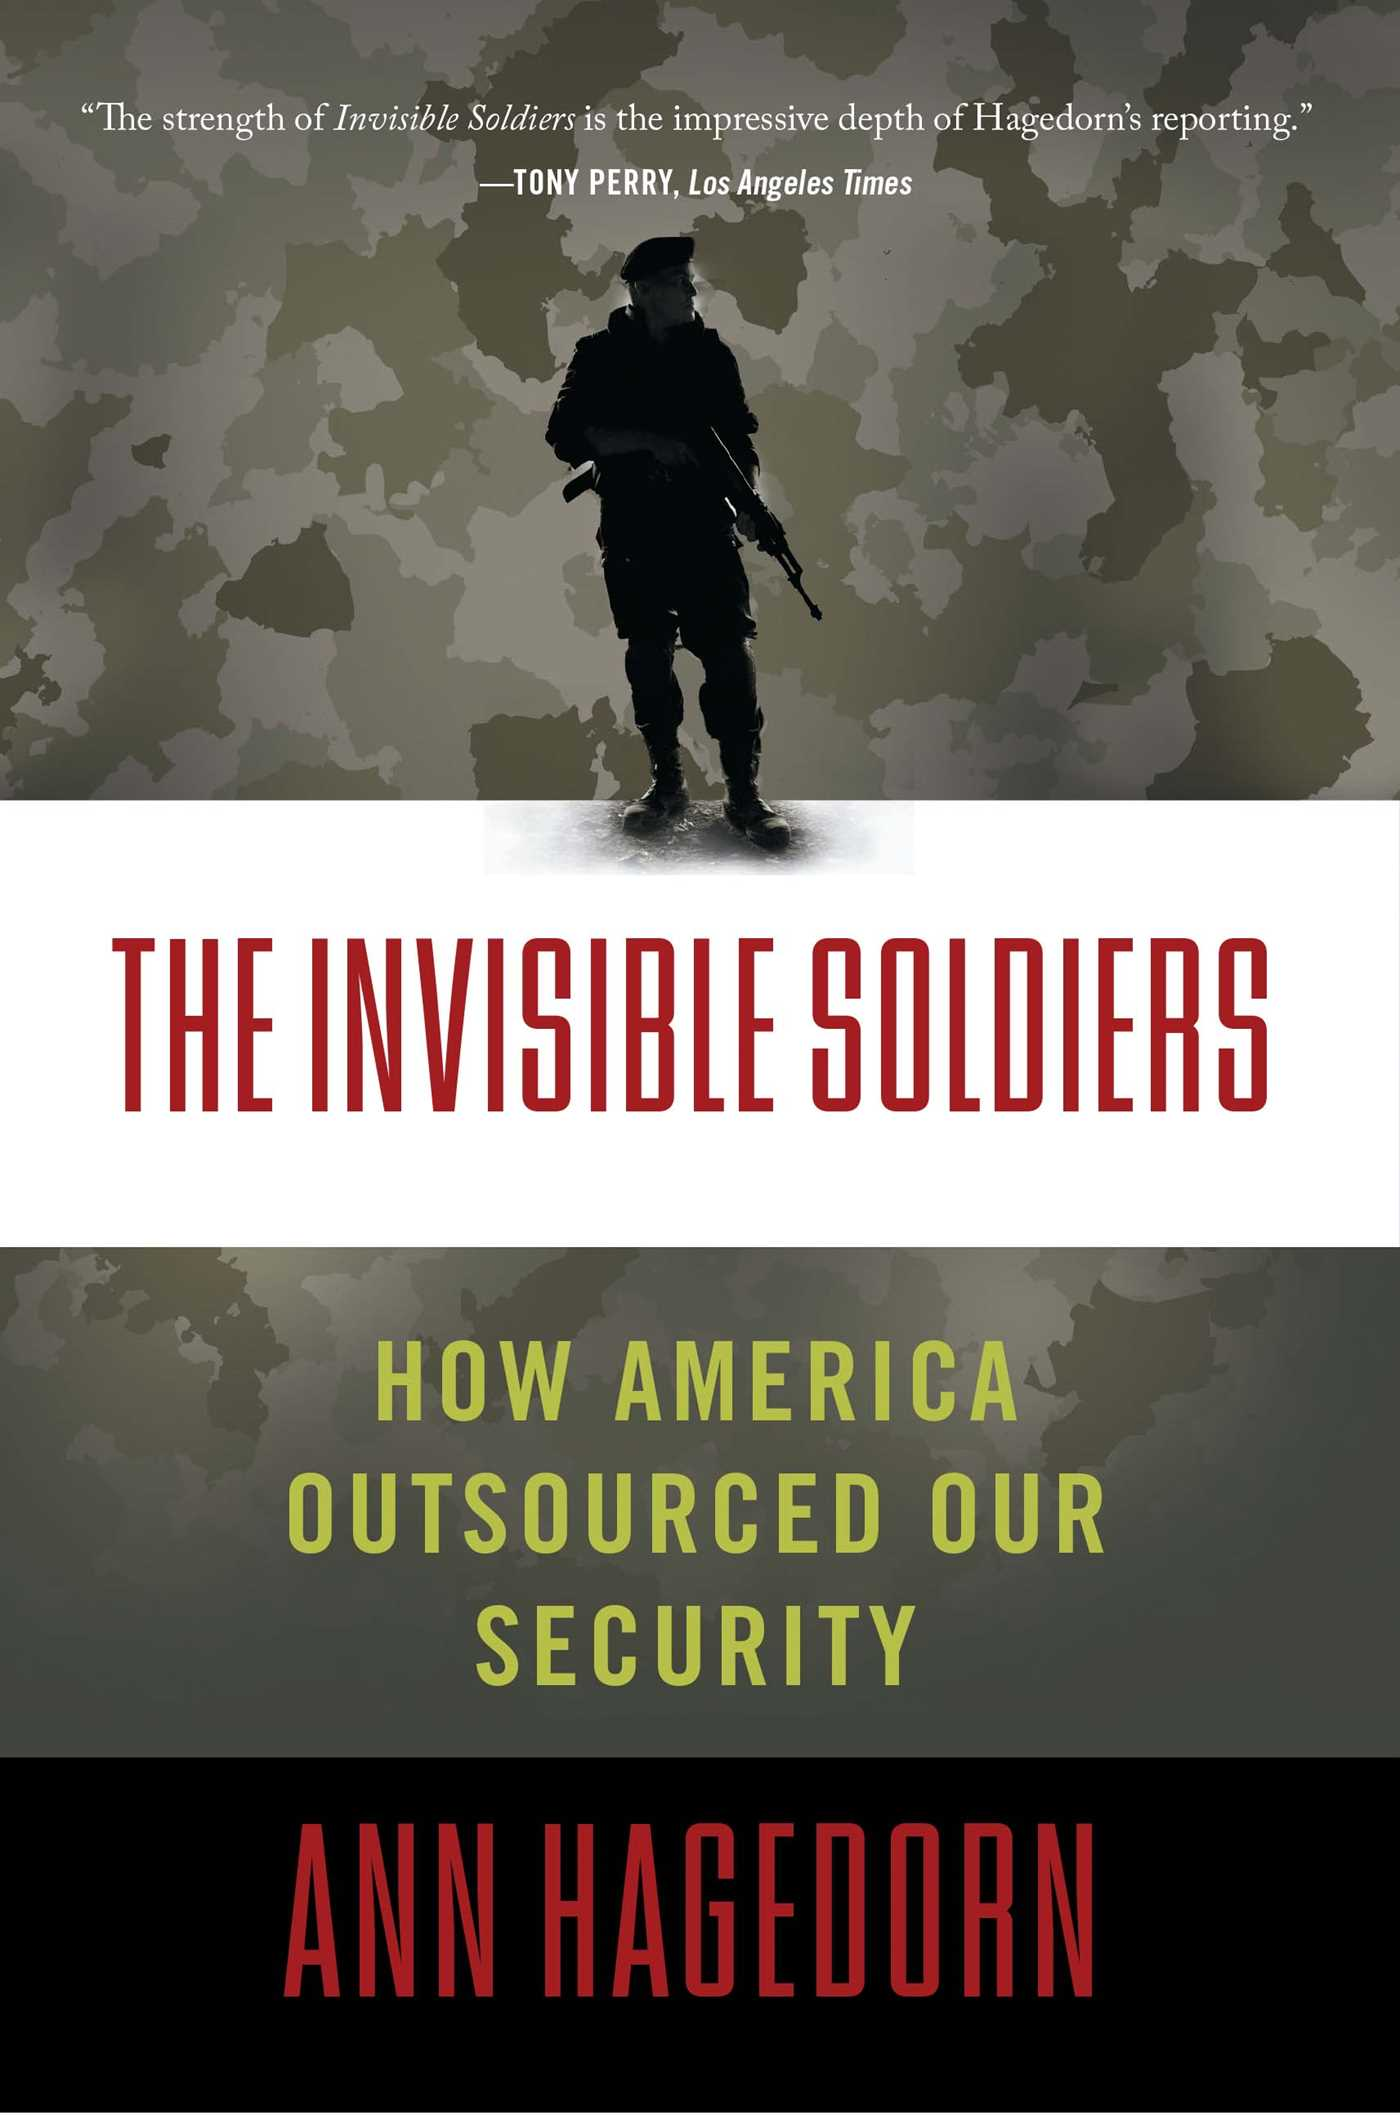 The invisible soldiers 9781416598817 hr